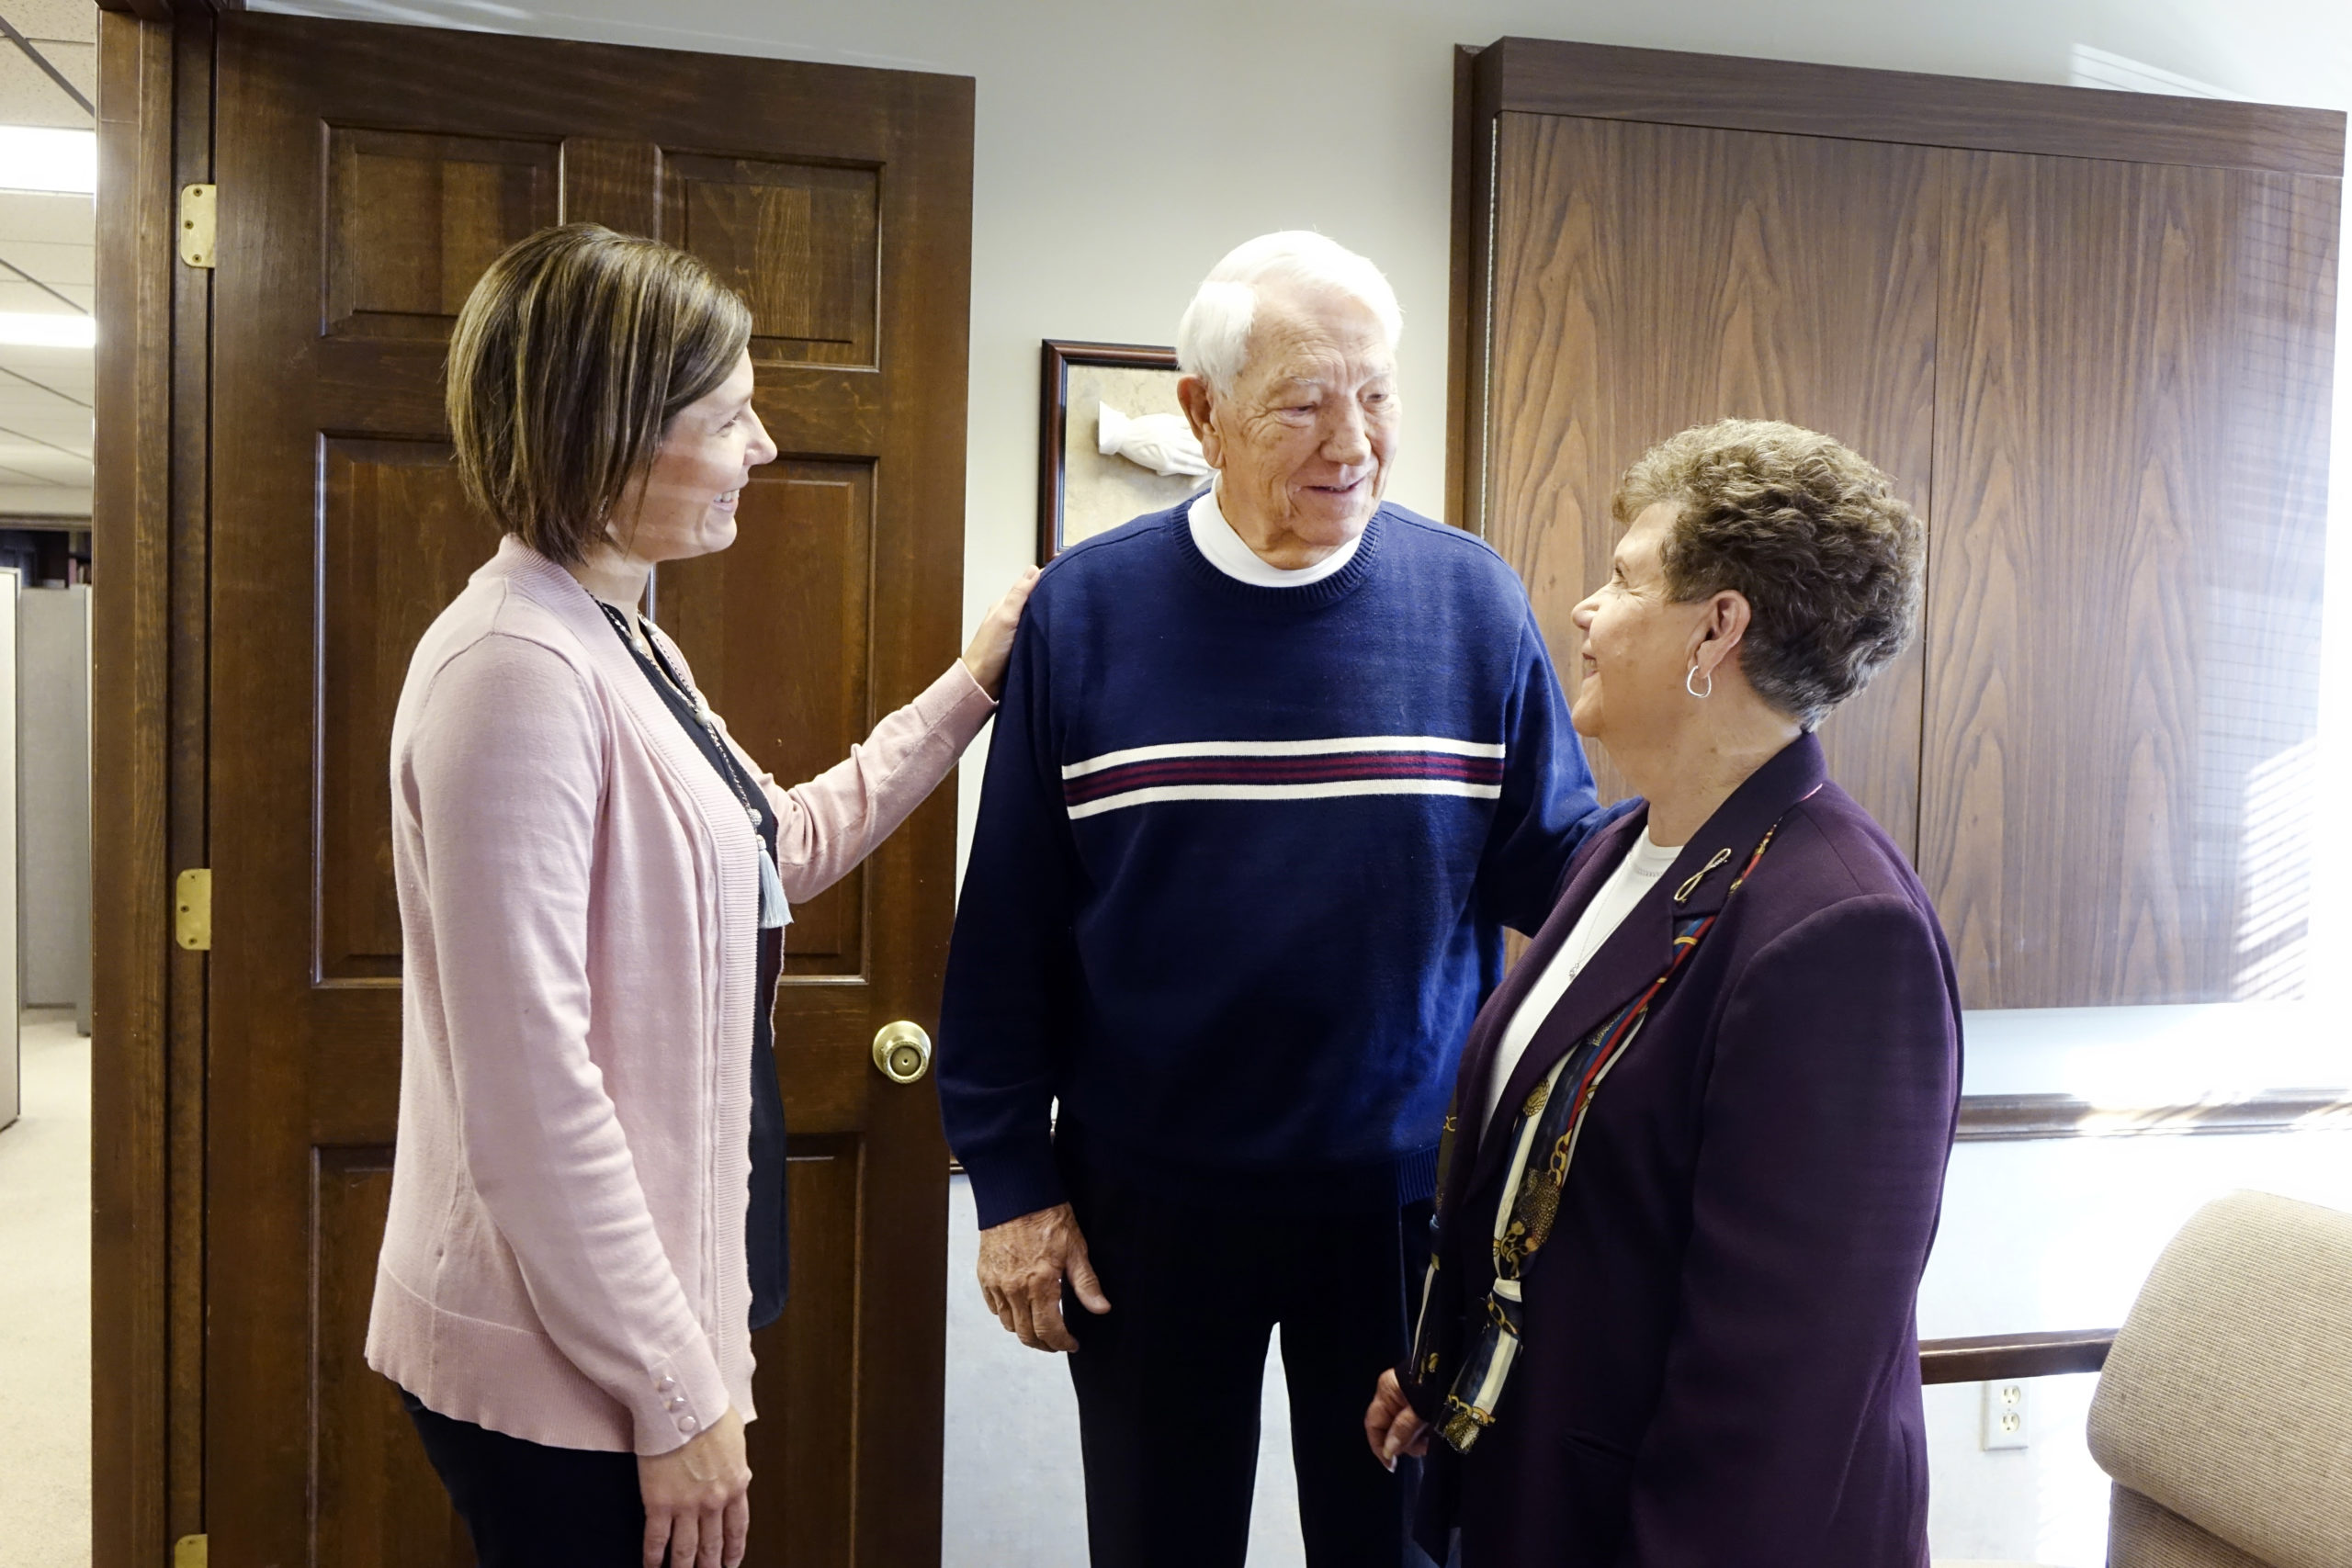 Finding Funds to Pay for Long-Term Care Costs